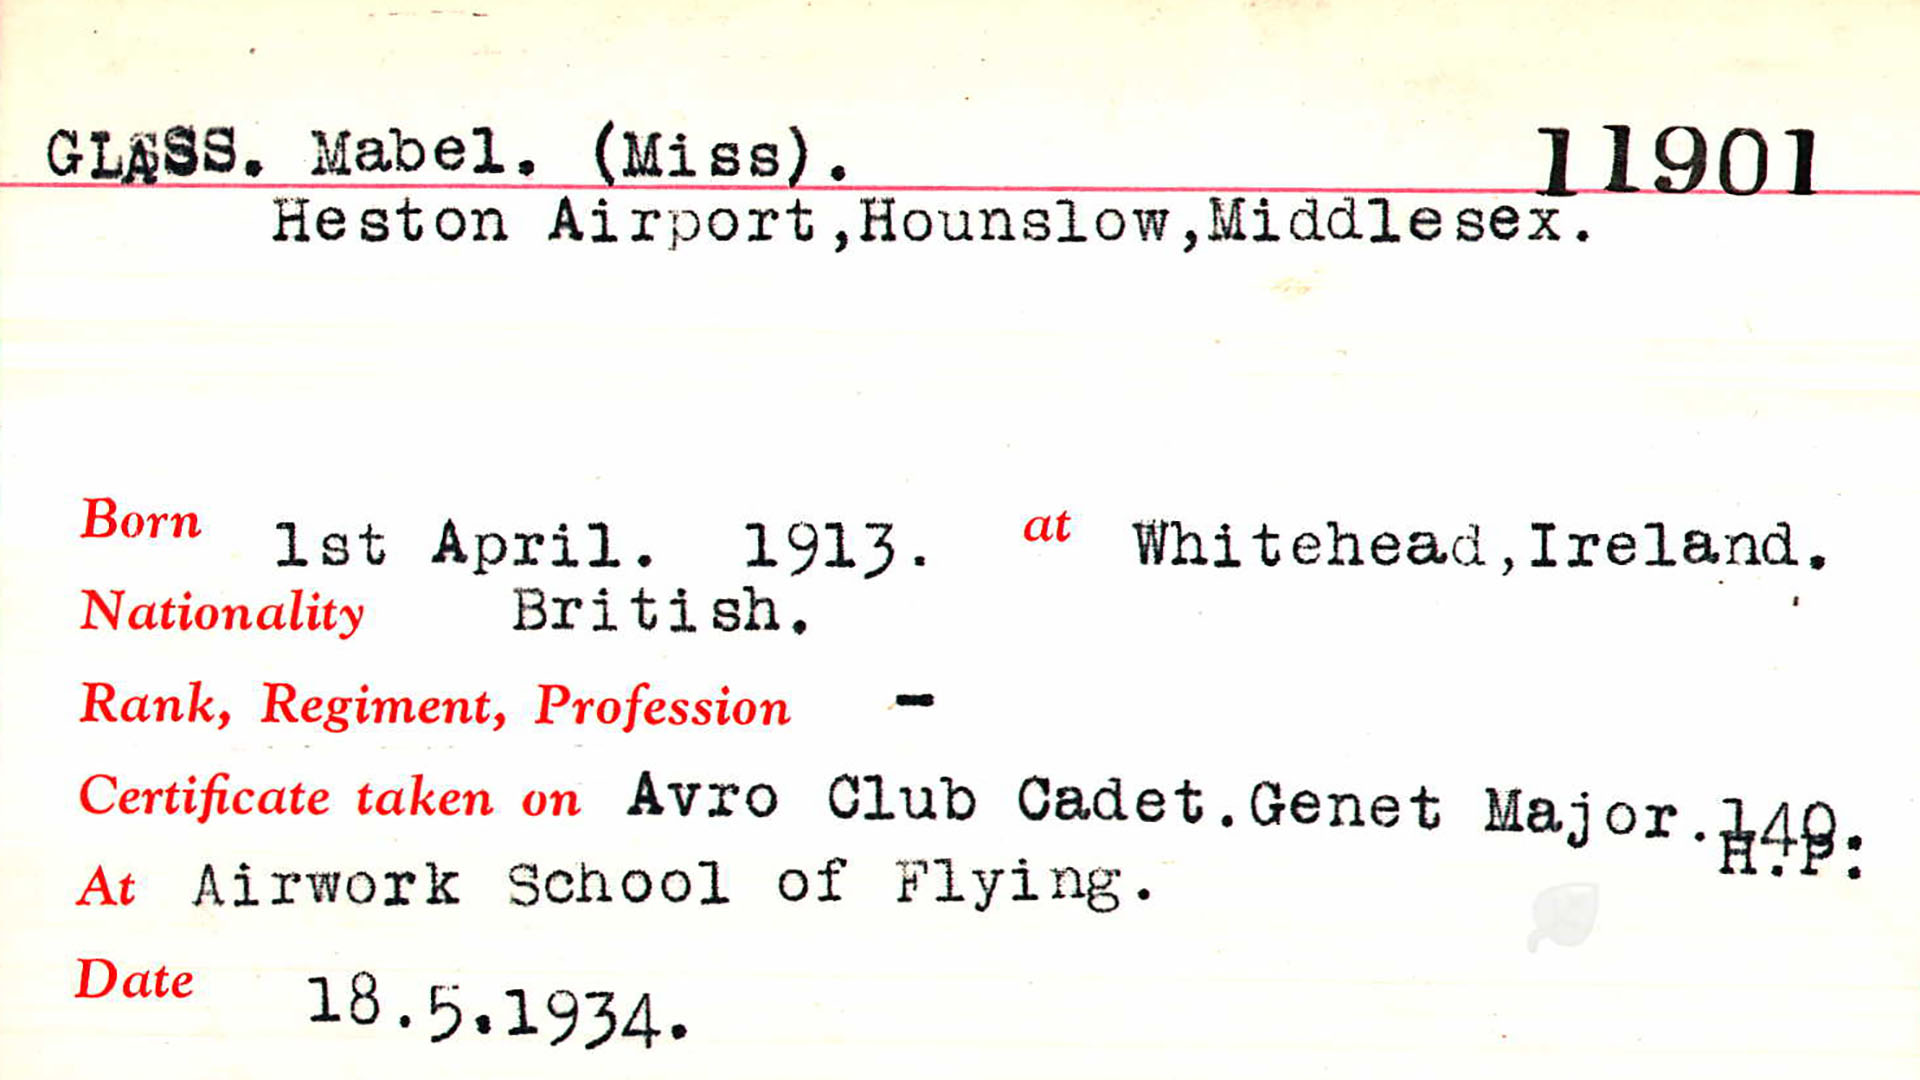 Aviation Documents of Mabel Glass